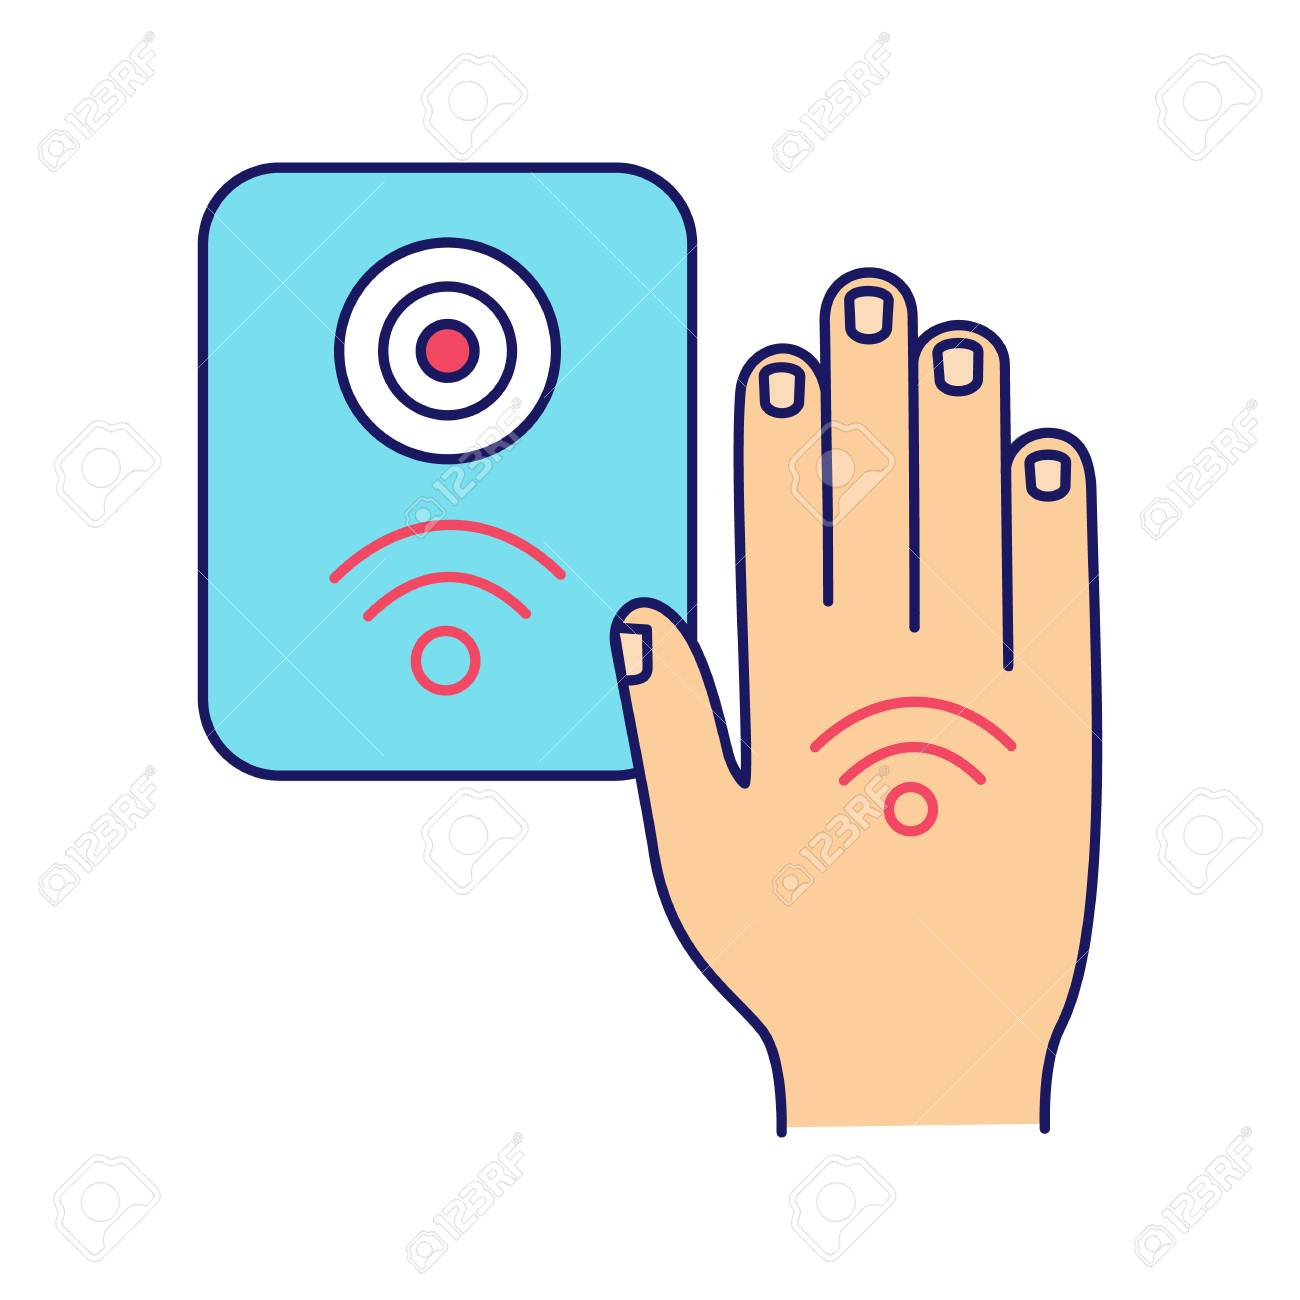 NFC reader color icon  RFID access control  NFC button and hand